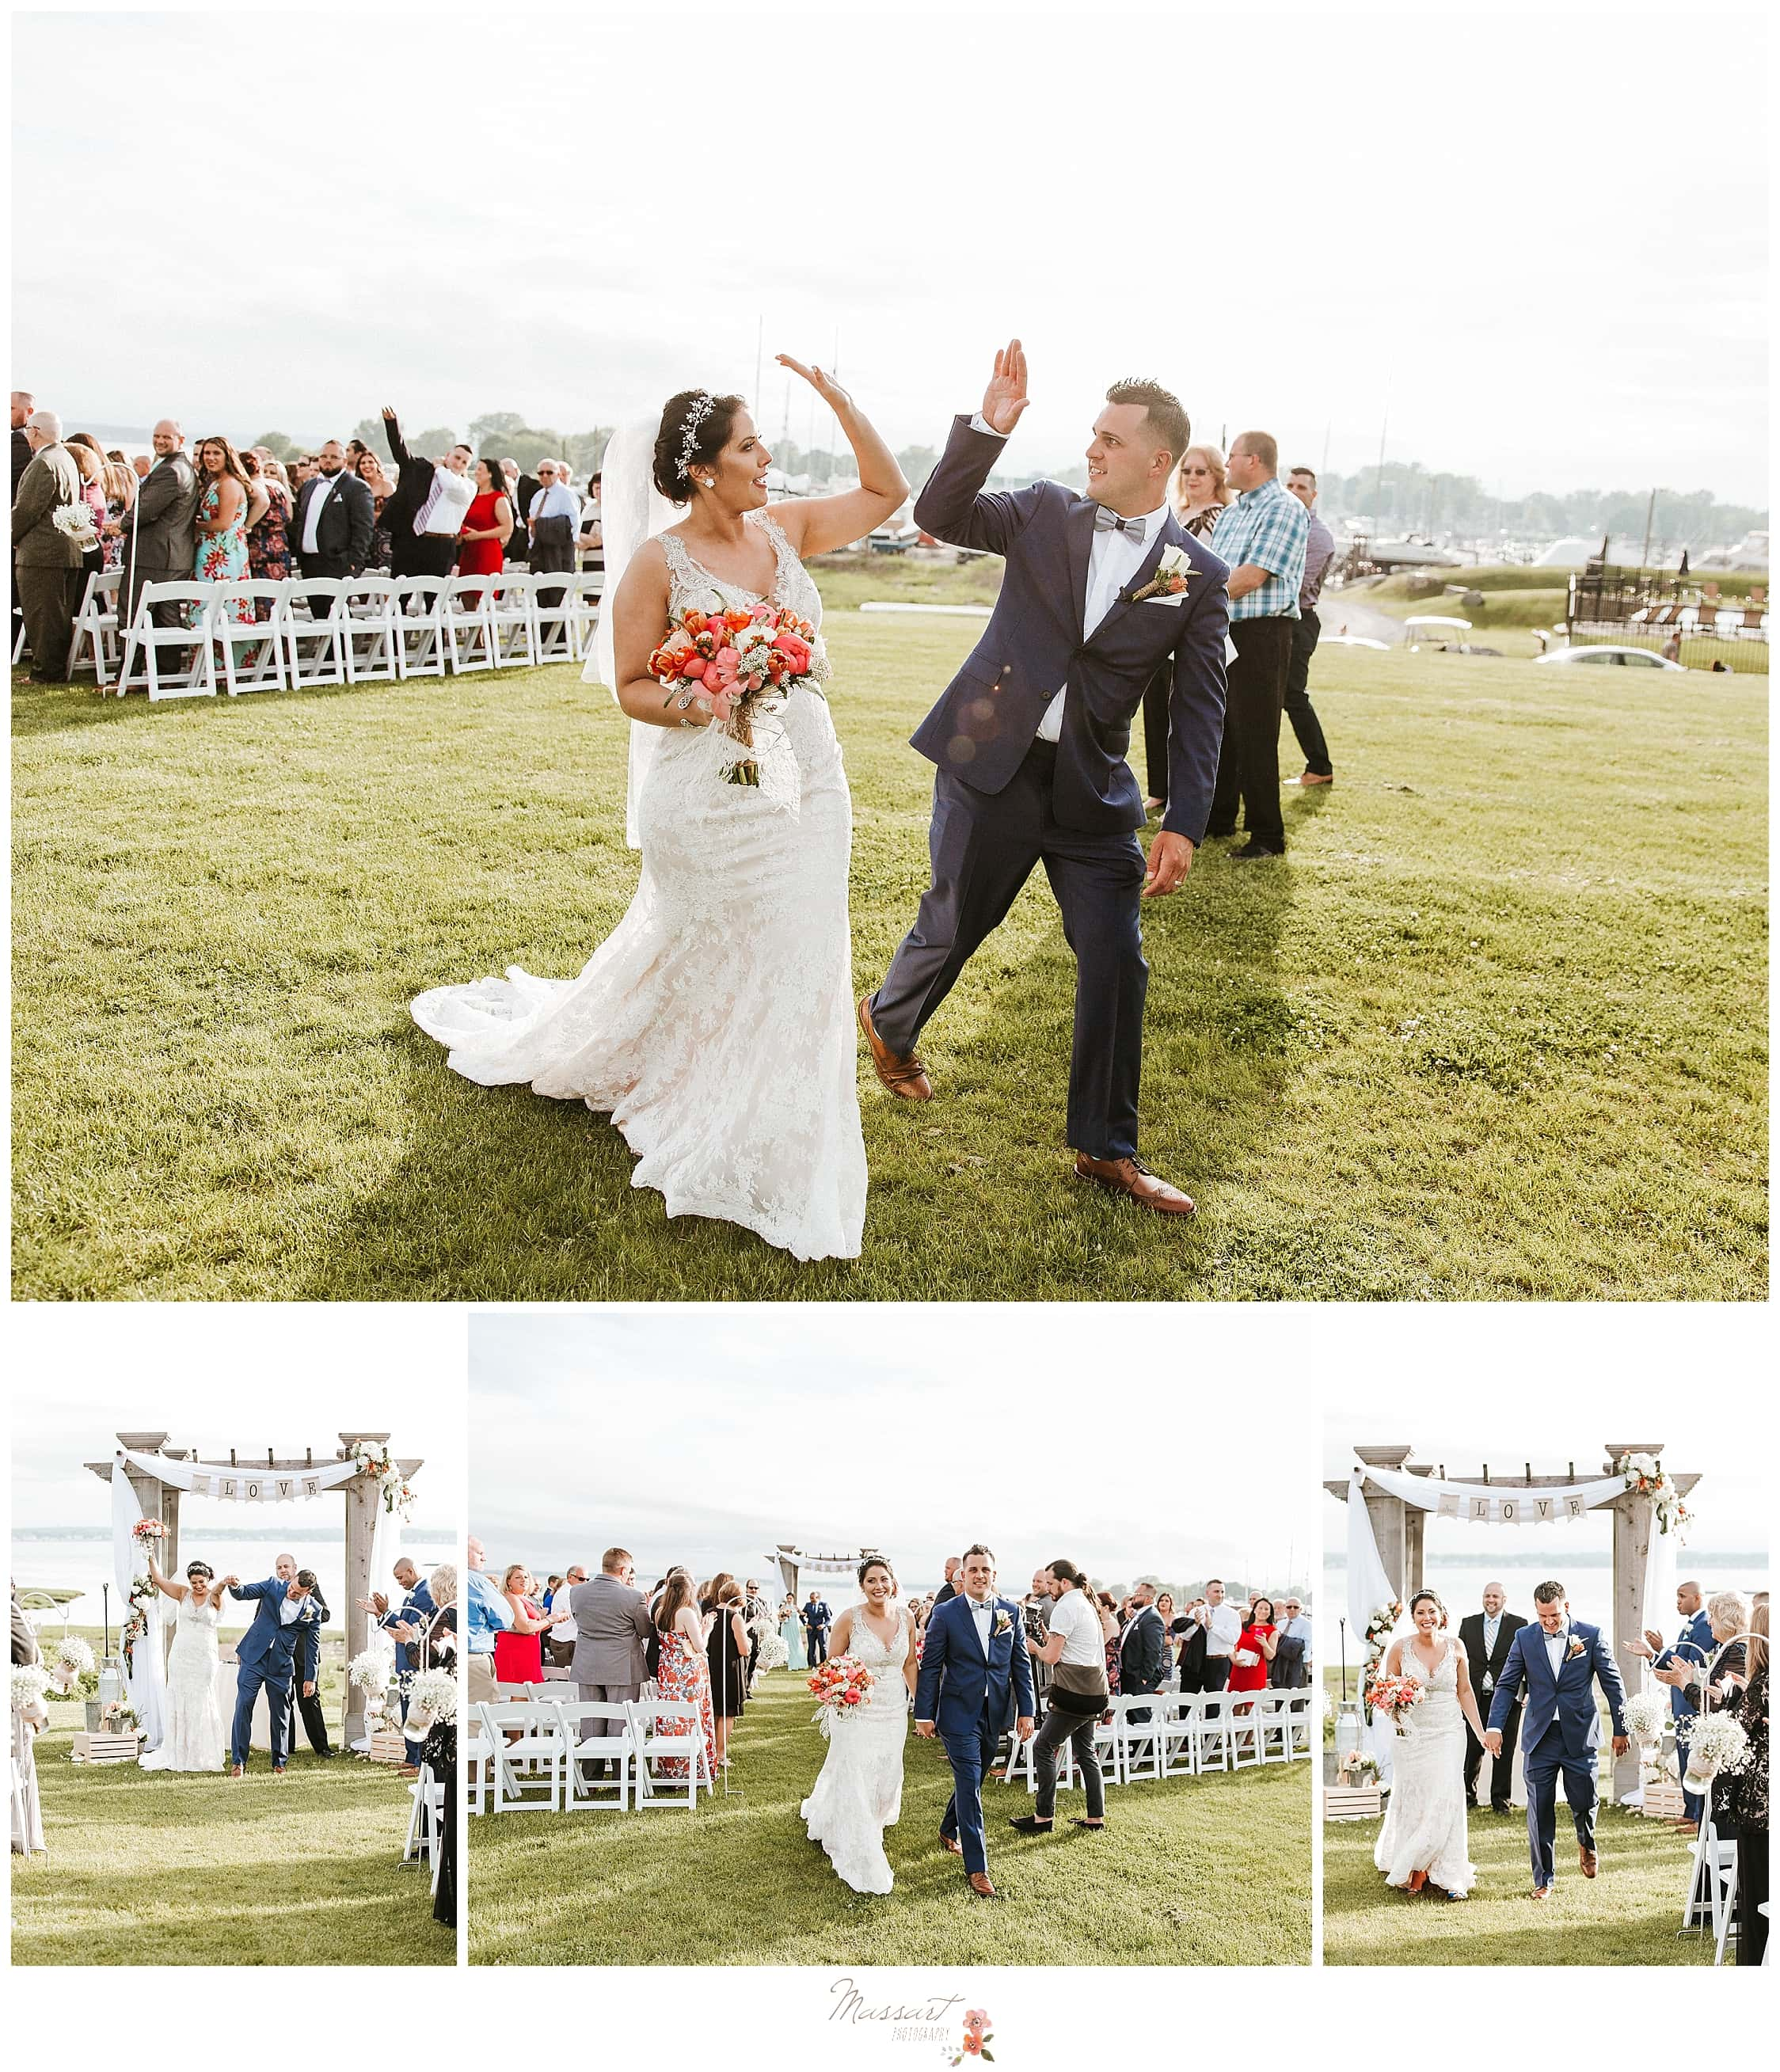 Bride and groom high fiving after wedding ceremony at Harbor Lights in RI photographed by CT and MA wedding photographers Massart Photography.